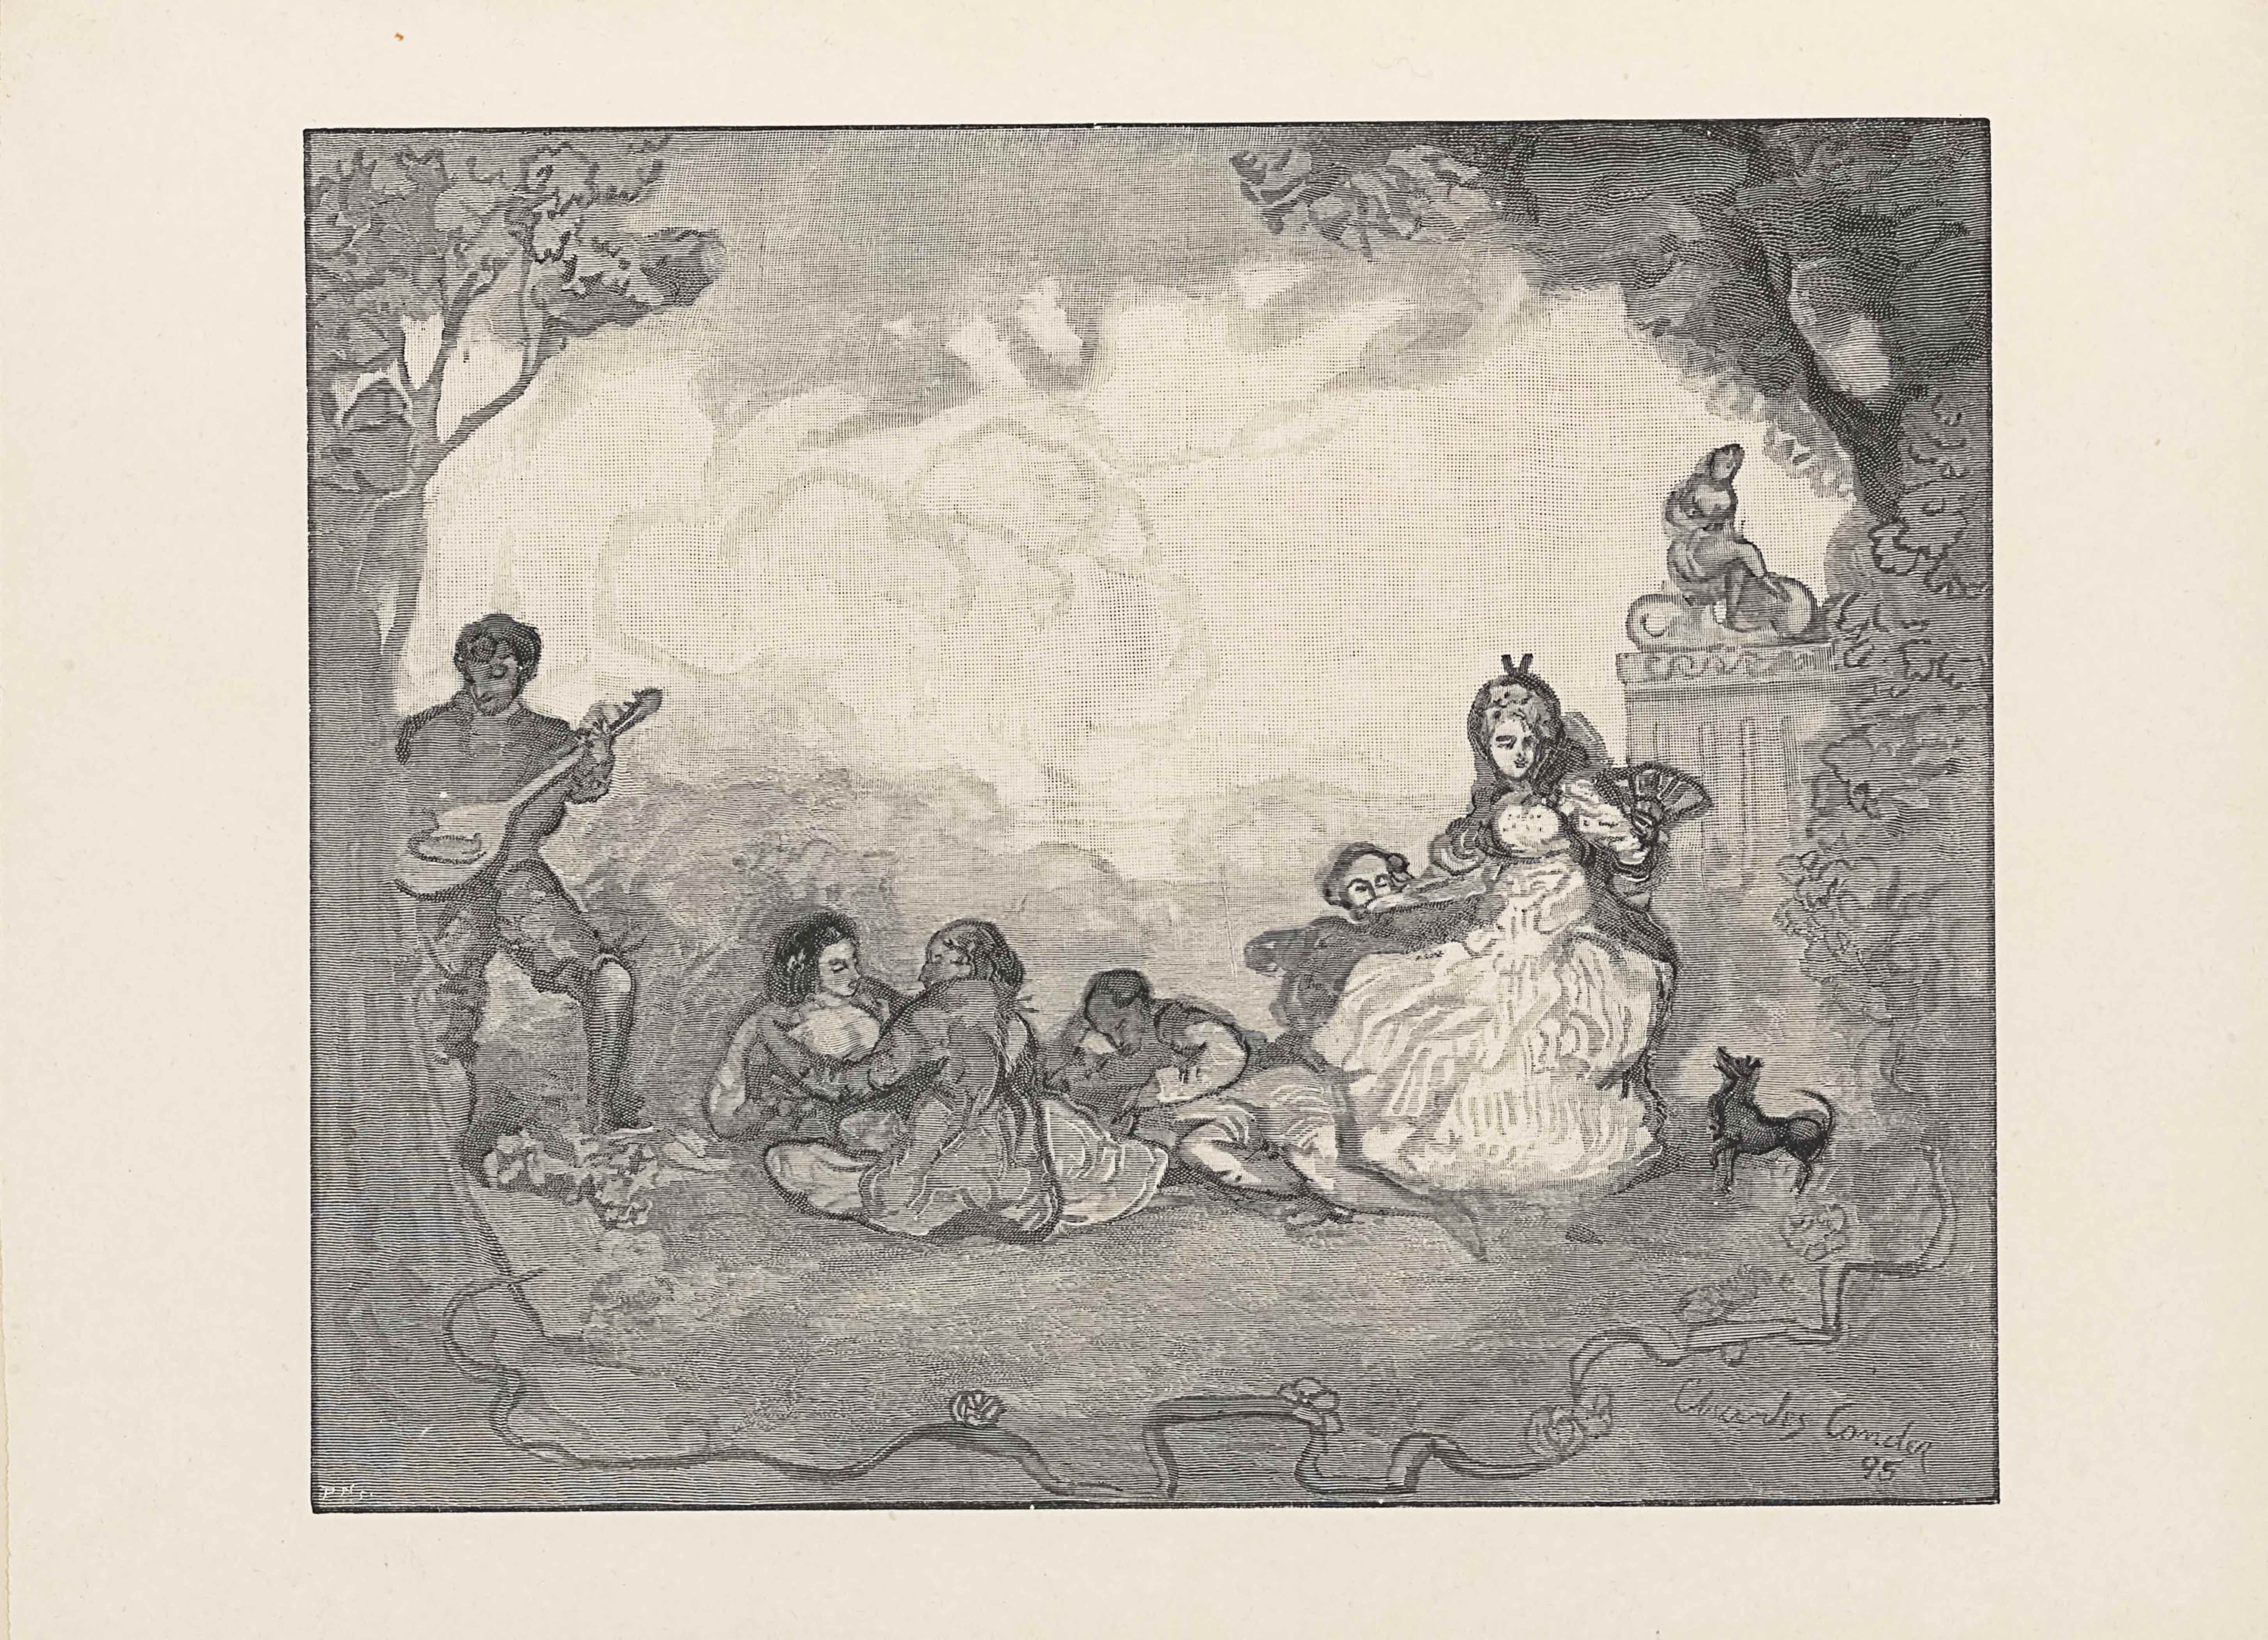 "The wood engraving from a water colour drawing is presented in landscape orientation. A single-lined rectangular border outlines a scene filled with six people in a forest. In the foreground is a curved line that looks like a tree root crossing from the left to the right side of the image with flowers budding intermittently. A tree grows up the left side of the image, half in view of the frame. In the mid-ground appear the six people. Immediately to the right of the tree on the left side of the page is a man standing and playing the mandoline, plainly clothed in a long-sleeve shirt, breeches, and bare feet. To the right of him are a man and a woman facing and holding one another while seated on the ground. The man appears to be shirtless, with the rest of his body blocked by the woman who leans forward in a long dress, with her back to the viewer. On the right side of them is a man leaned back on his right elbow looking at a book with his legs sprawled out. The last two figures are to the right of the reader. A man with only his head peeking out is behind a bench on which a woman is seated. She sits in a long white dress with a dark overcoat and hair flowing down around a hairpiece. She has a fan opened in her left hand and is poised to wave it. A small, black dog to the right of the woman looks up at her fan. In the background of the woman and dog on the far right of the page is a parthenon-style building with a female statue seated on the flat roof. A tree sprouts up behind and mid-ground bushes partially obstruct the right side of the building from view. In the central background and taking up the top third of the page is the faint outline of a mountainous landscape and a swirling, cloudy sky. The artist's signature appears in the bottom right corner of the piece as: ""Charles Conder"" on a diagonal aiming down to the right. The text: ""95"" appears underneath the name but aligned to the right."